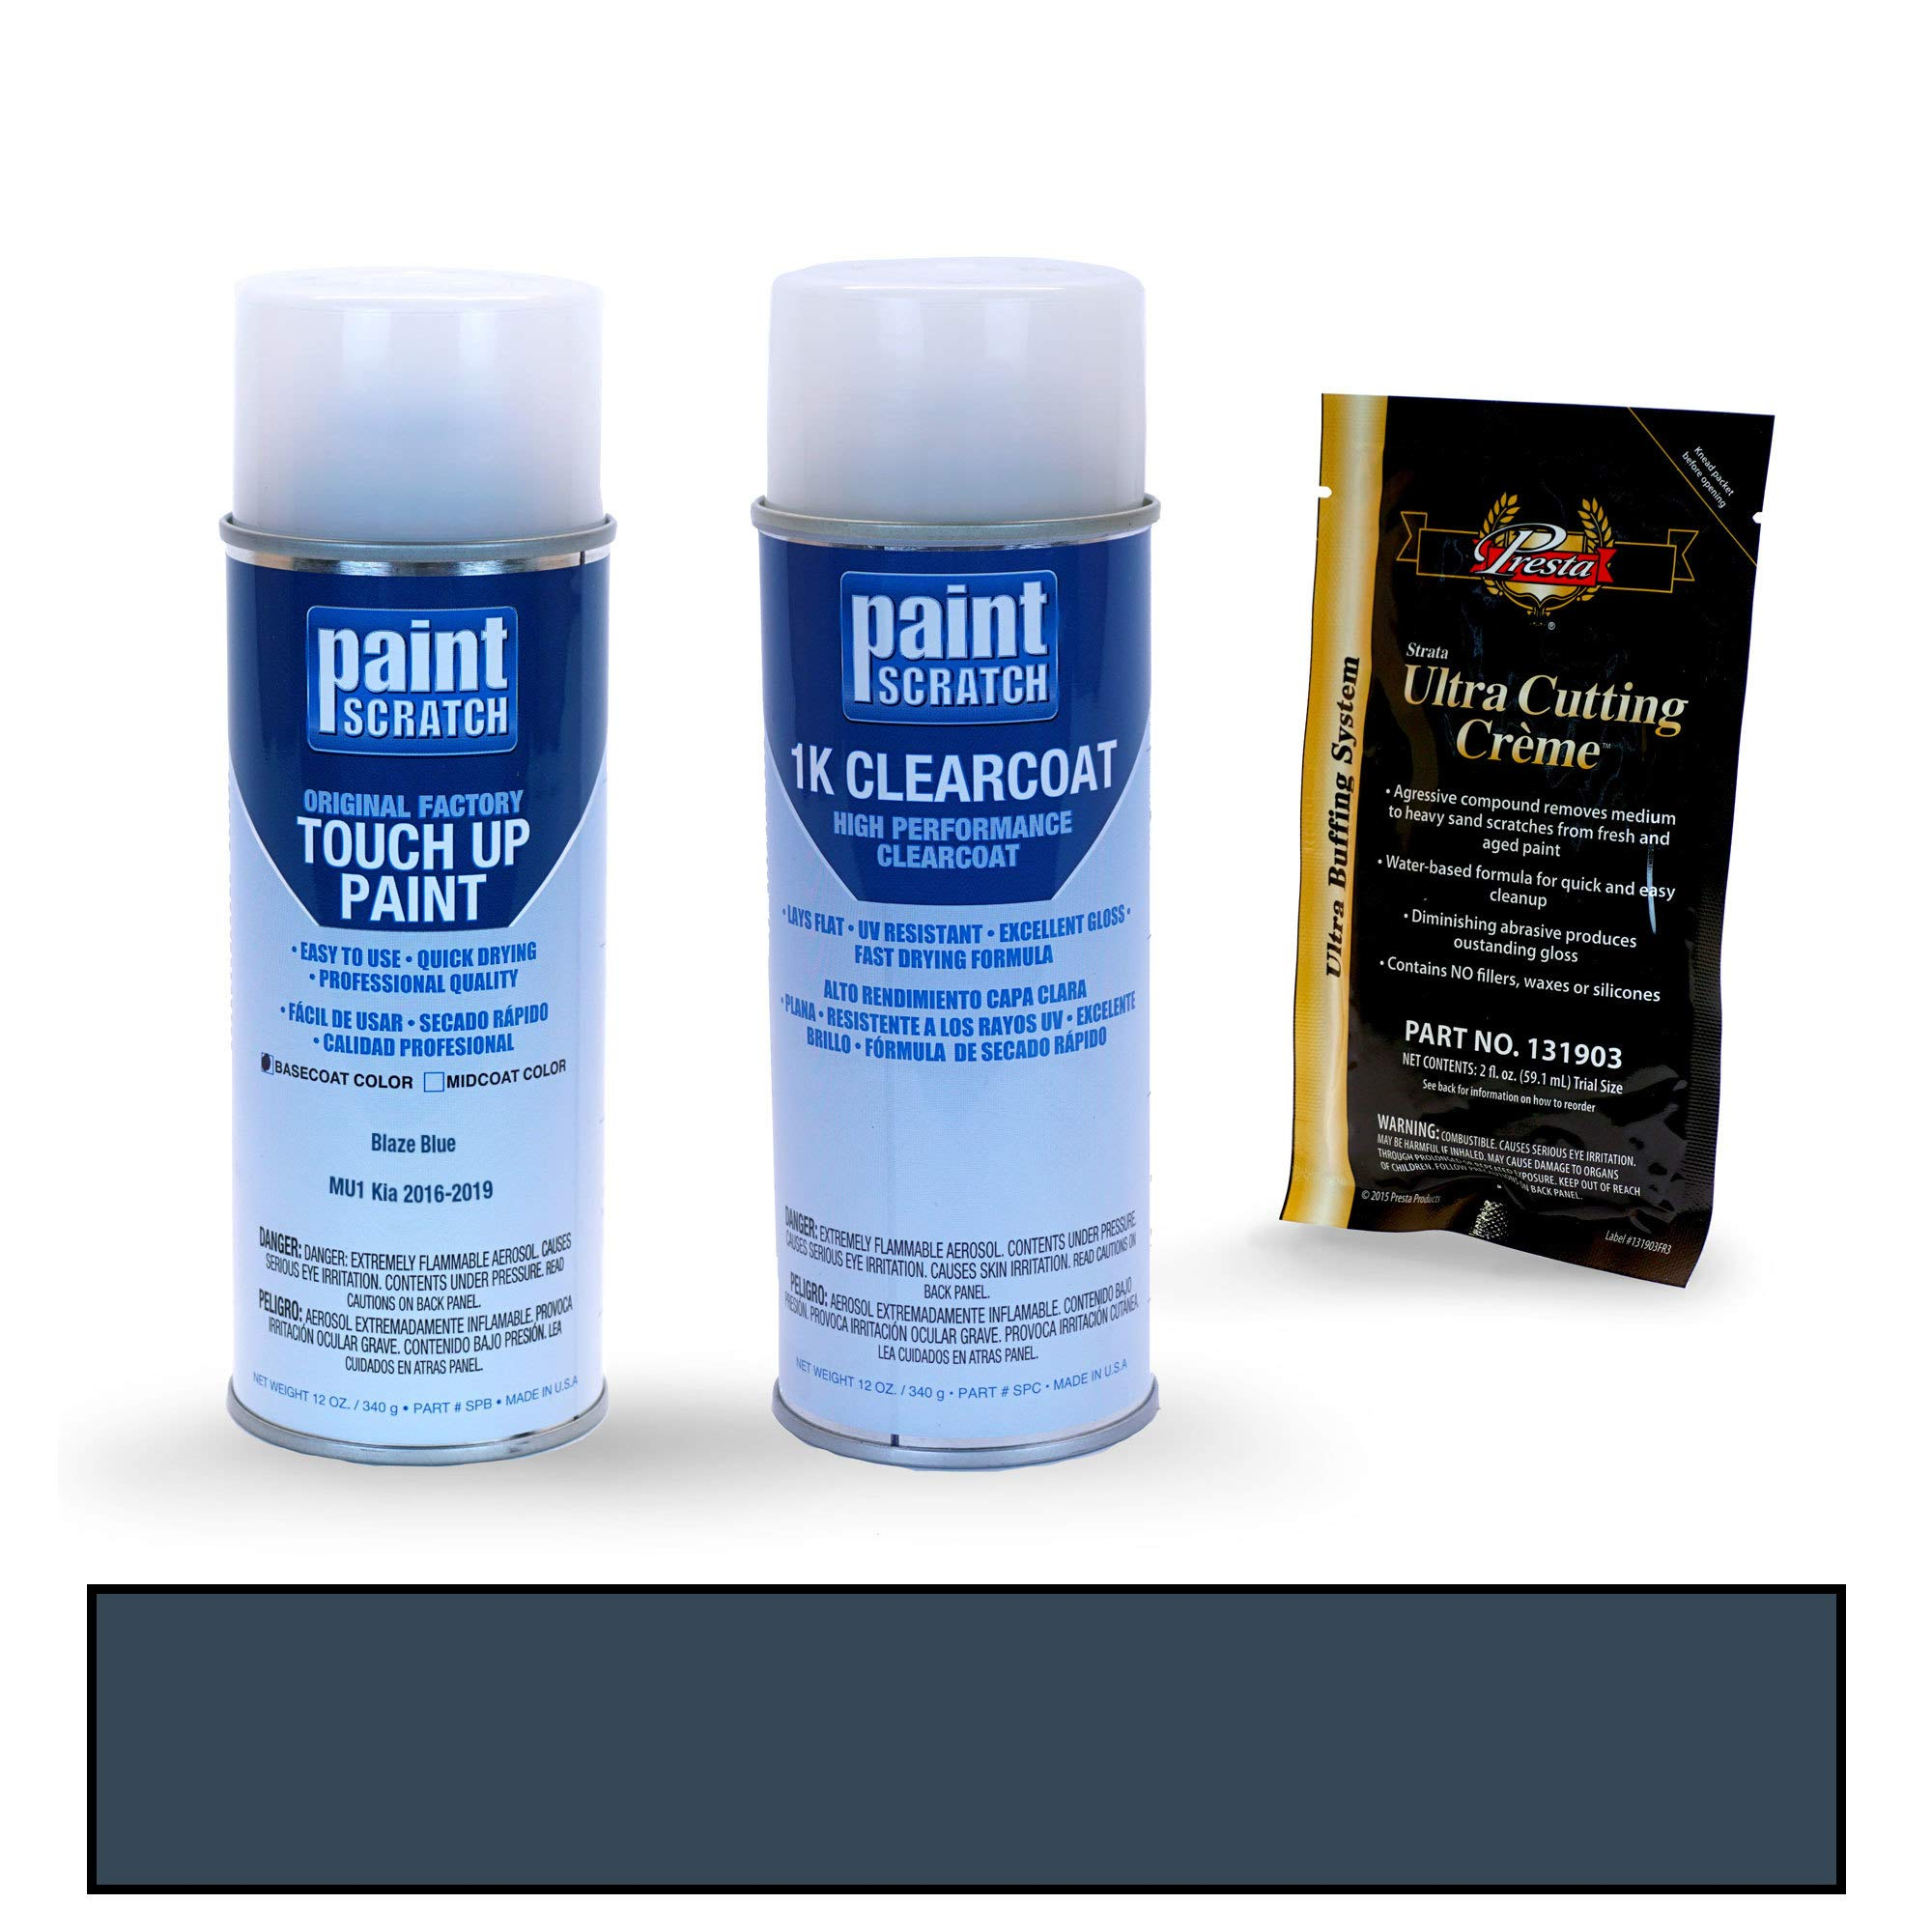 PAINTSCRATCH Touch Up Paint Spray Can Car Scratch Repair Kit - Compatible with Kia Sorento Blaze Blue (Color Code: MU1)